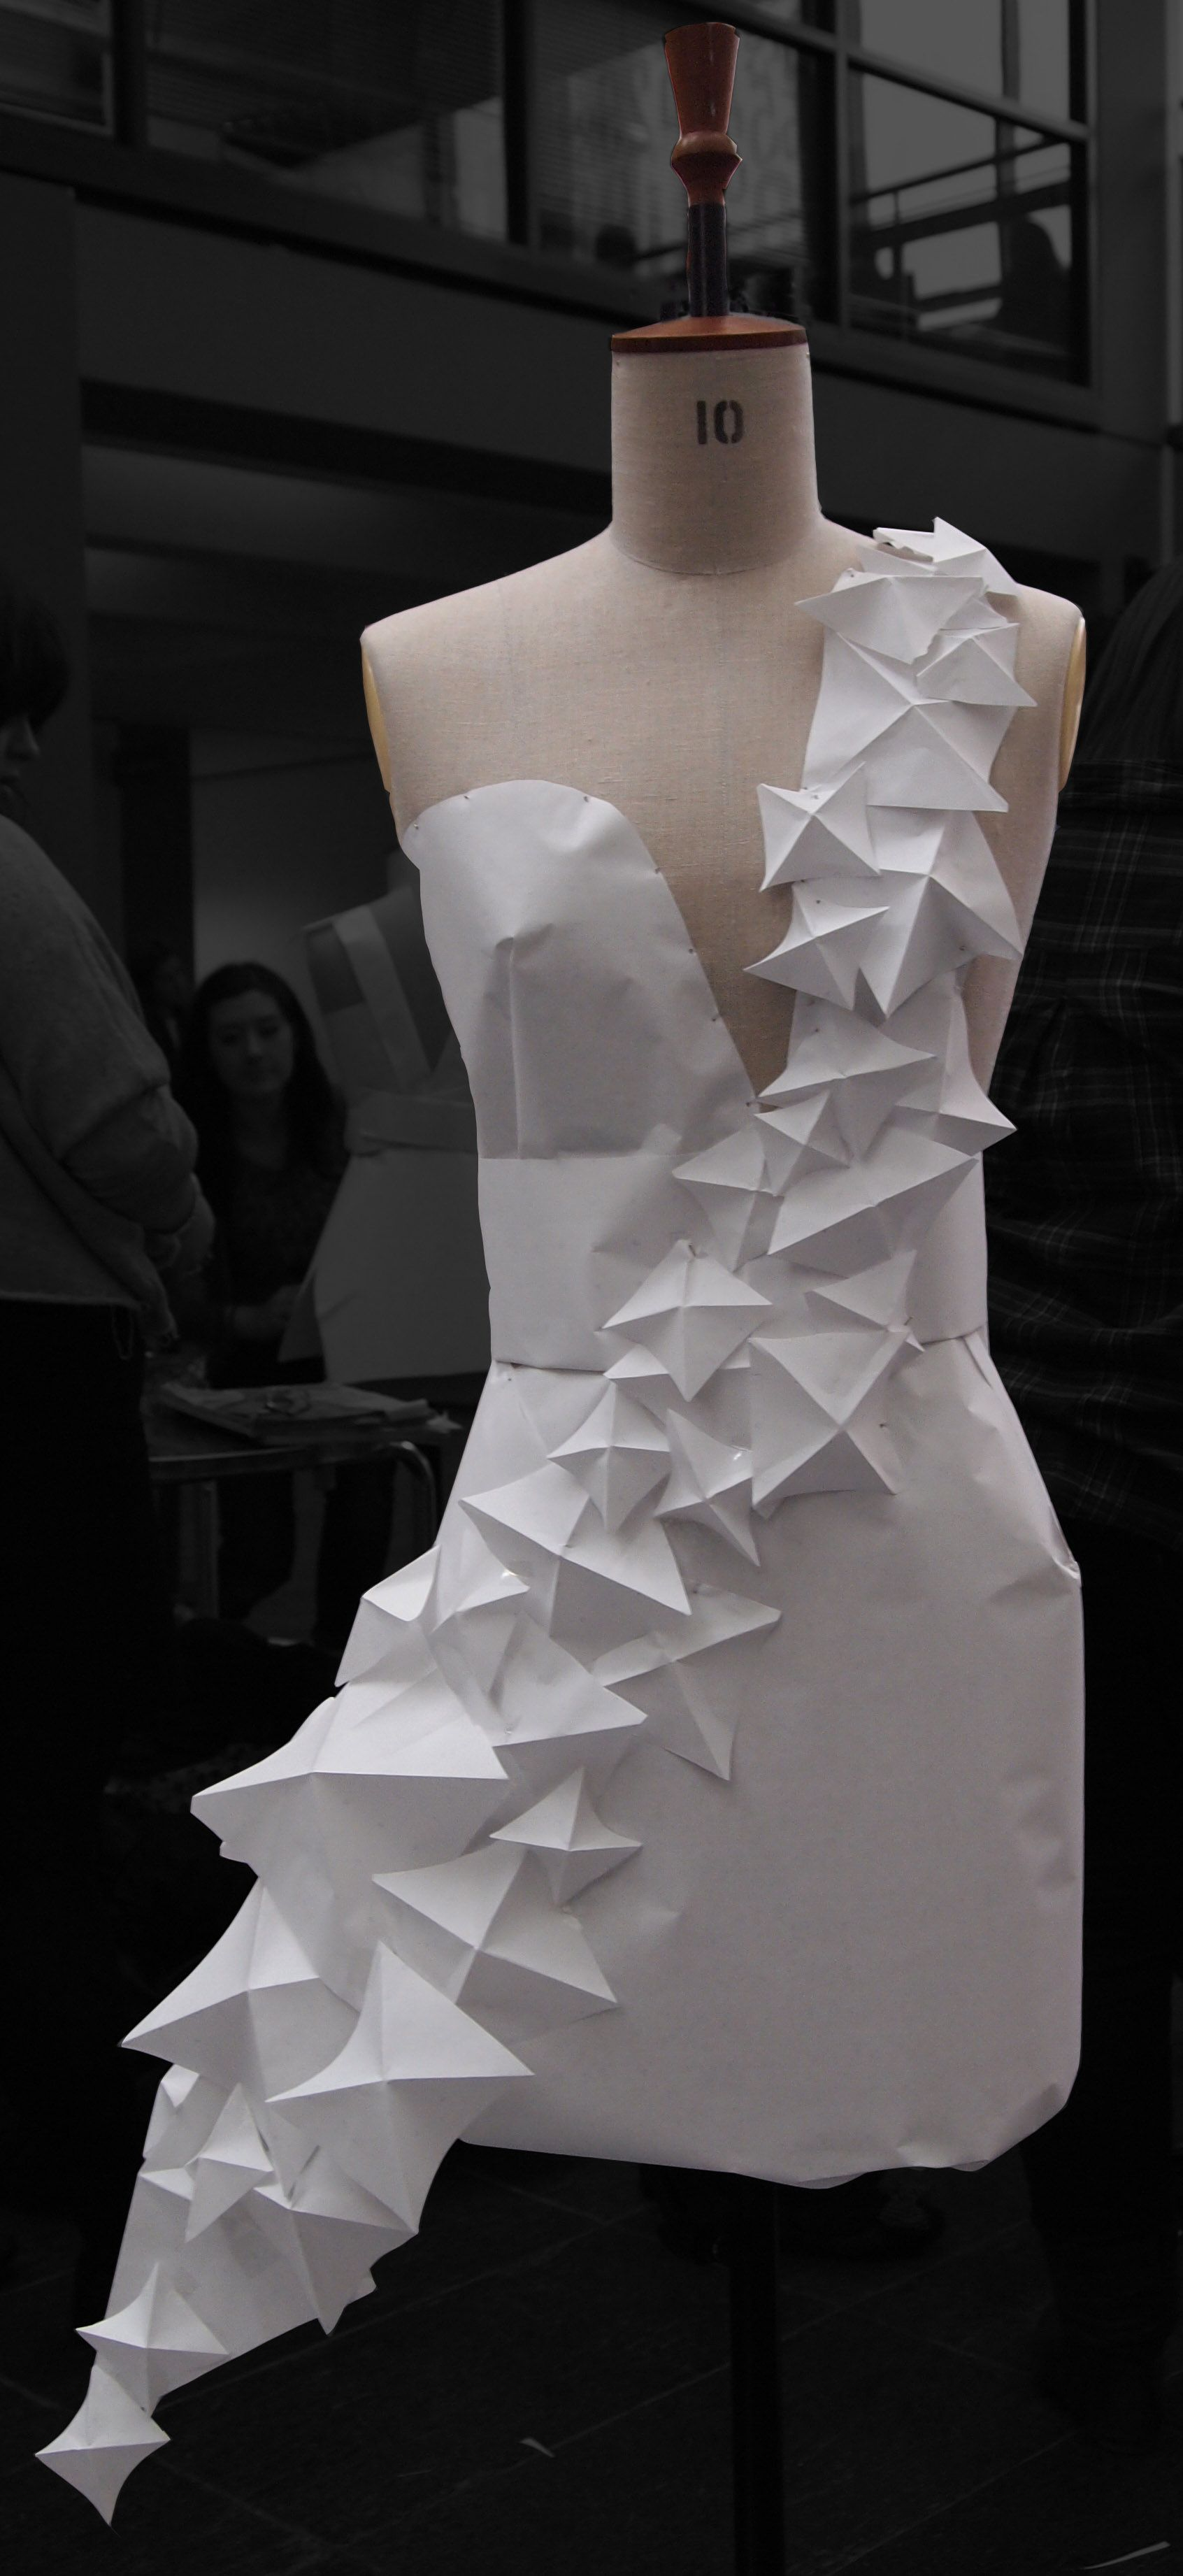 35+ Origami inspired fashion designs - PIXEL77 | 3684x1692